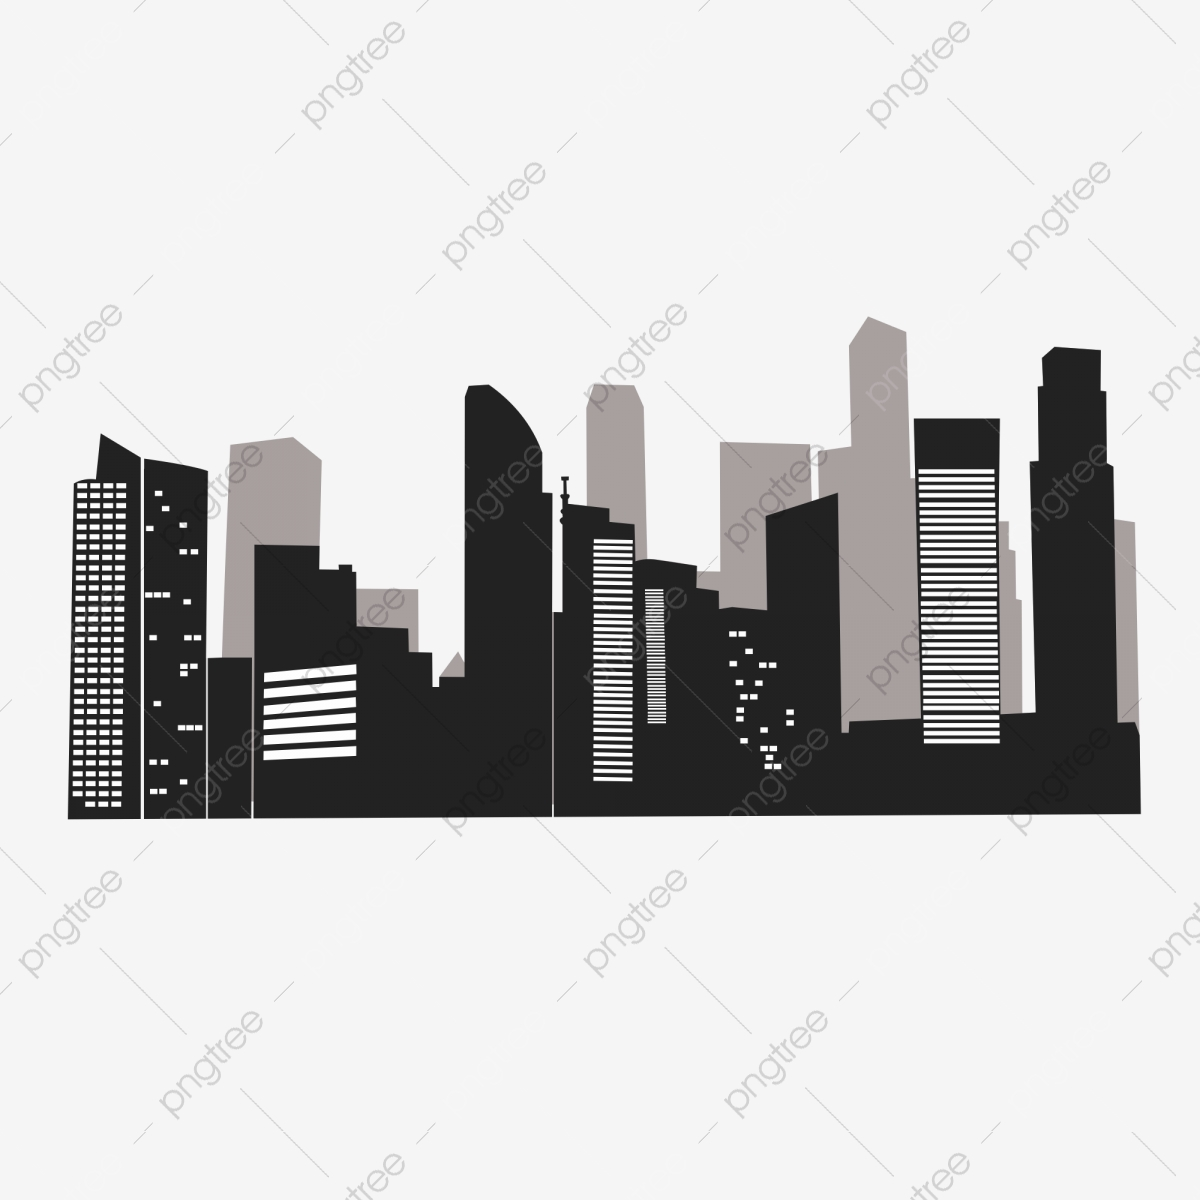 City Buildings Group Silhouette Vector, Building Silhouette, Black And White Building, City ...